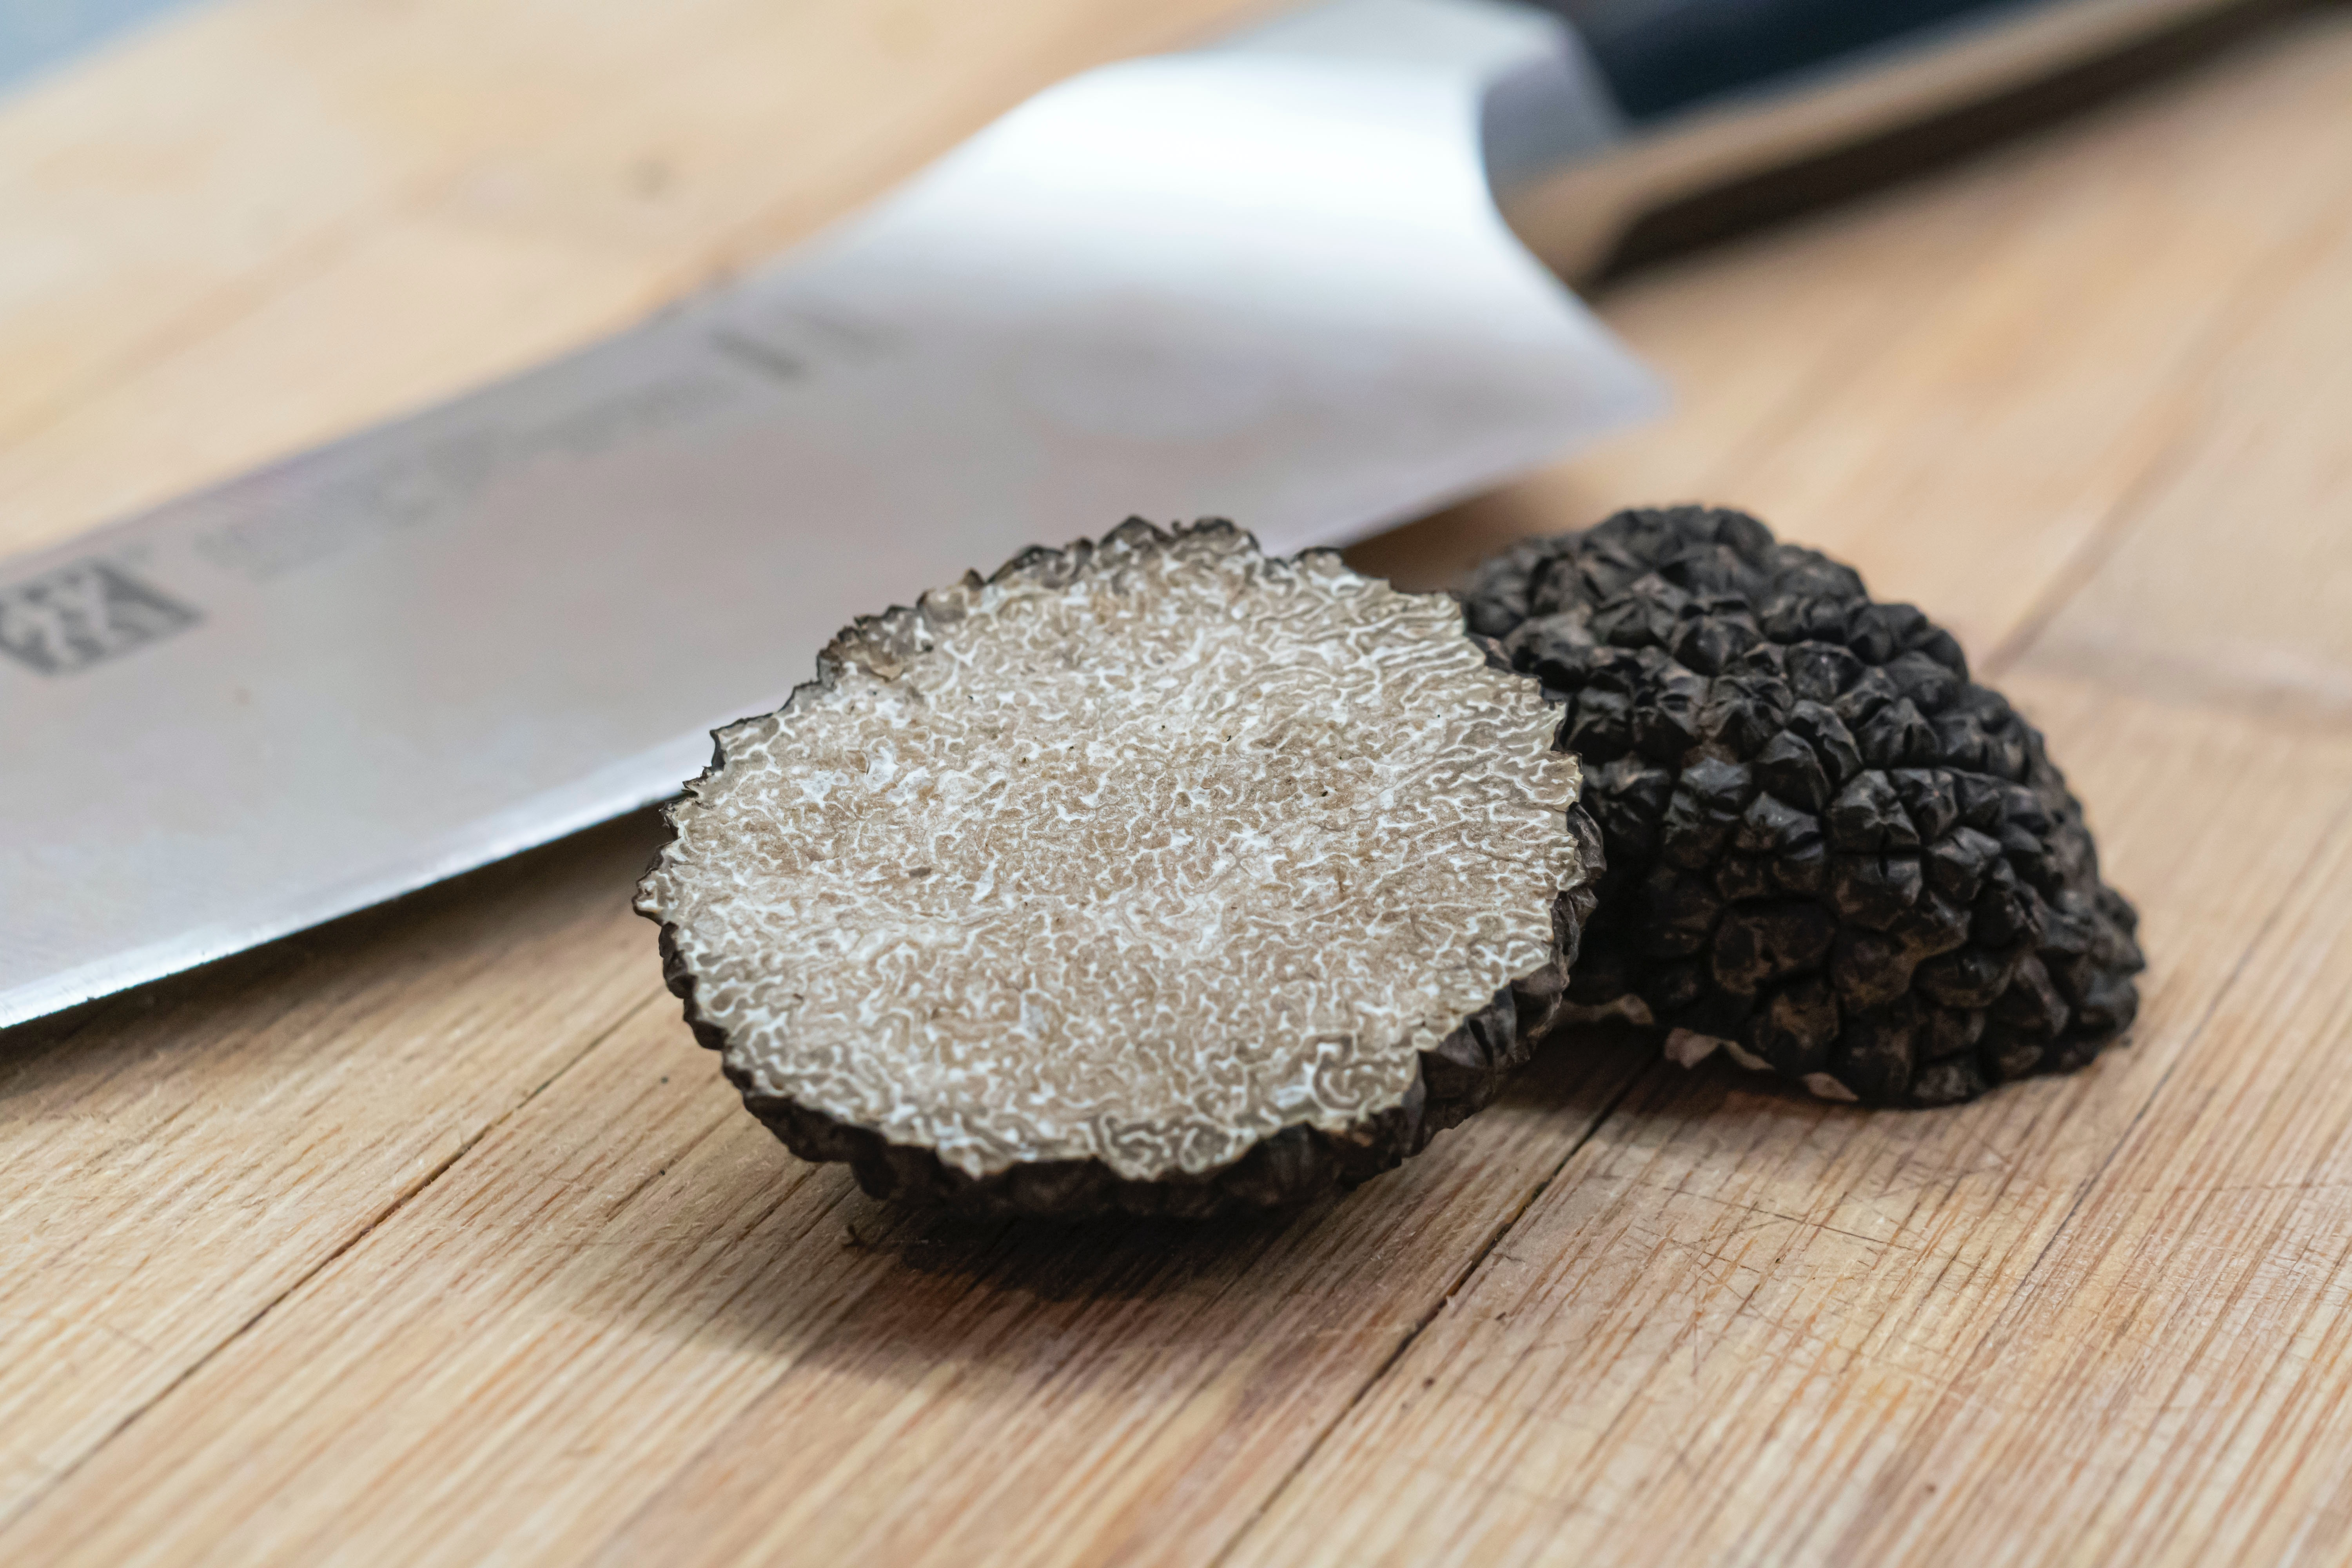 Cooking with New season truffles 31 July